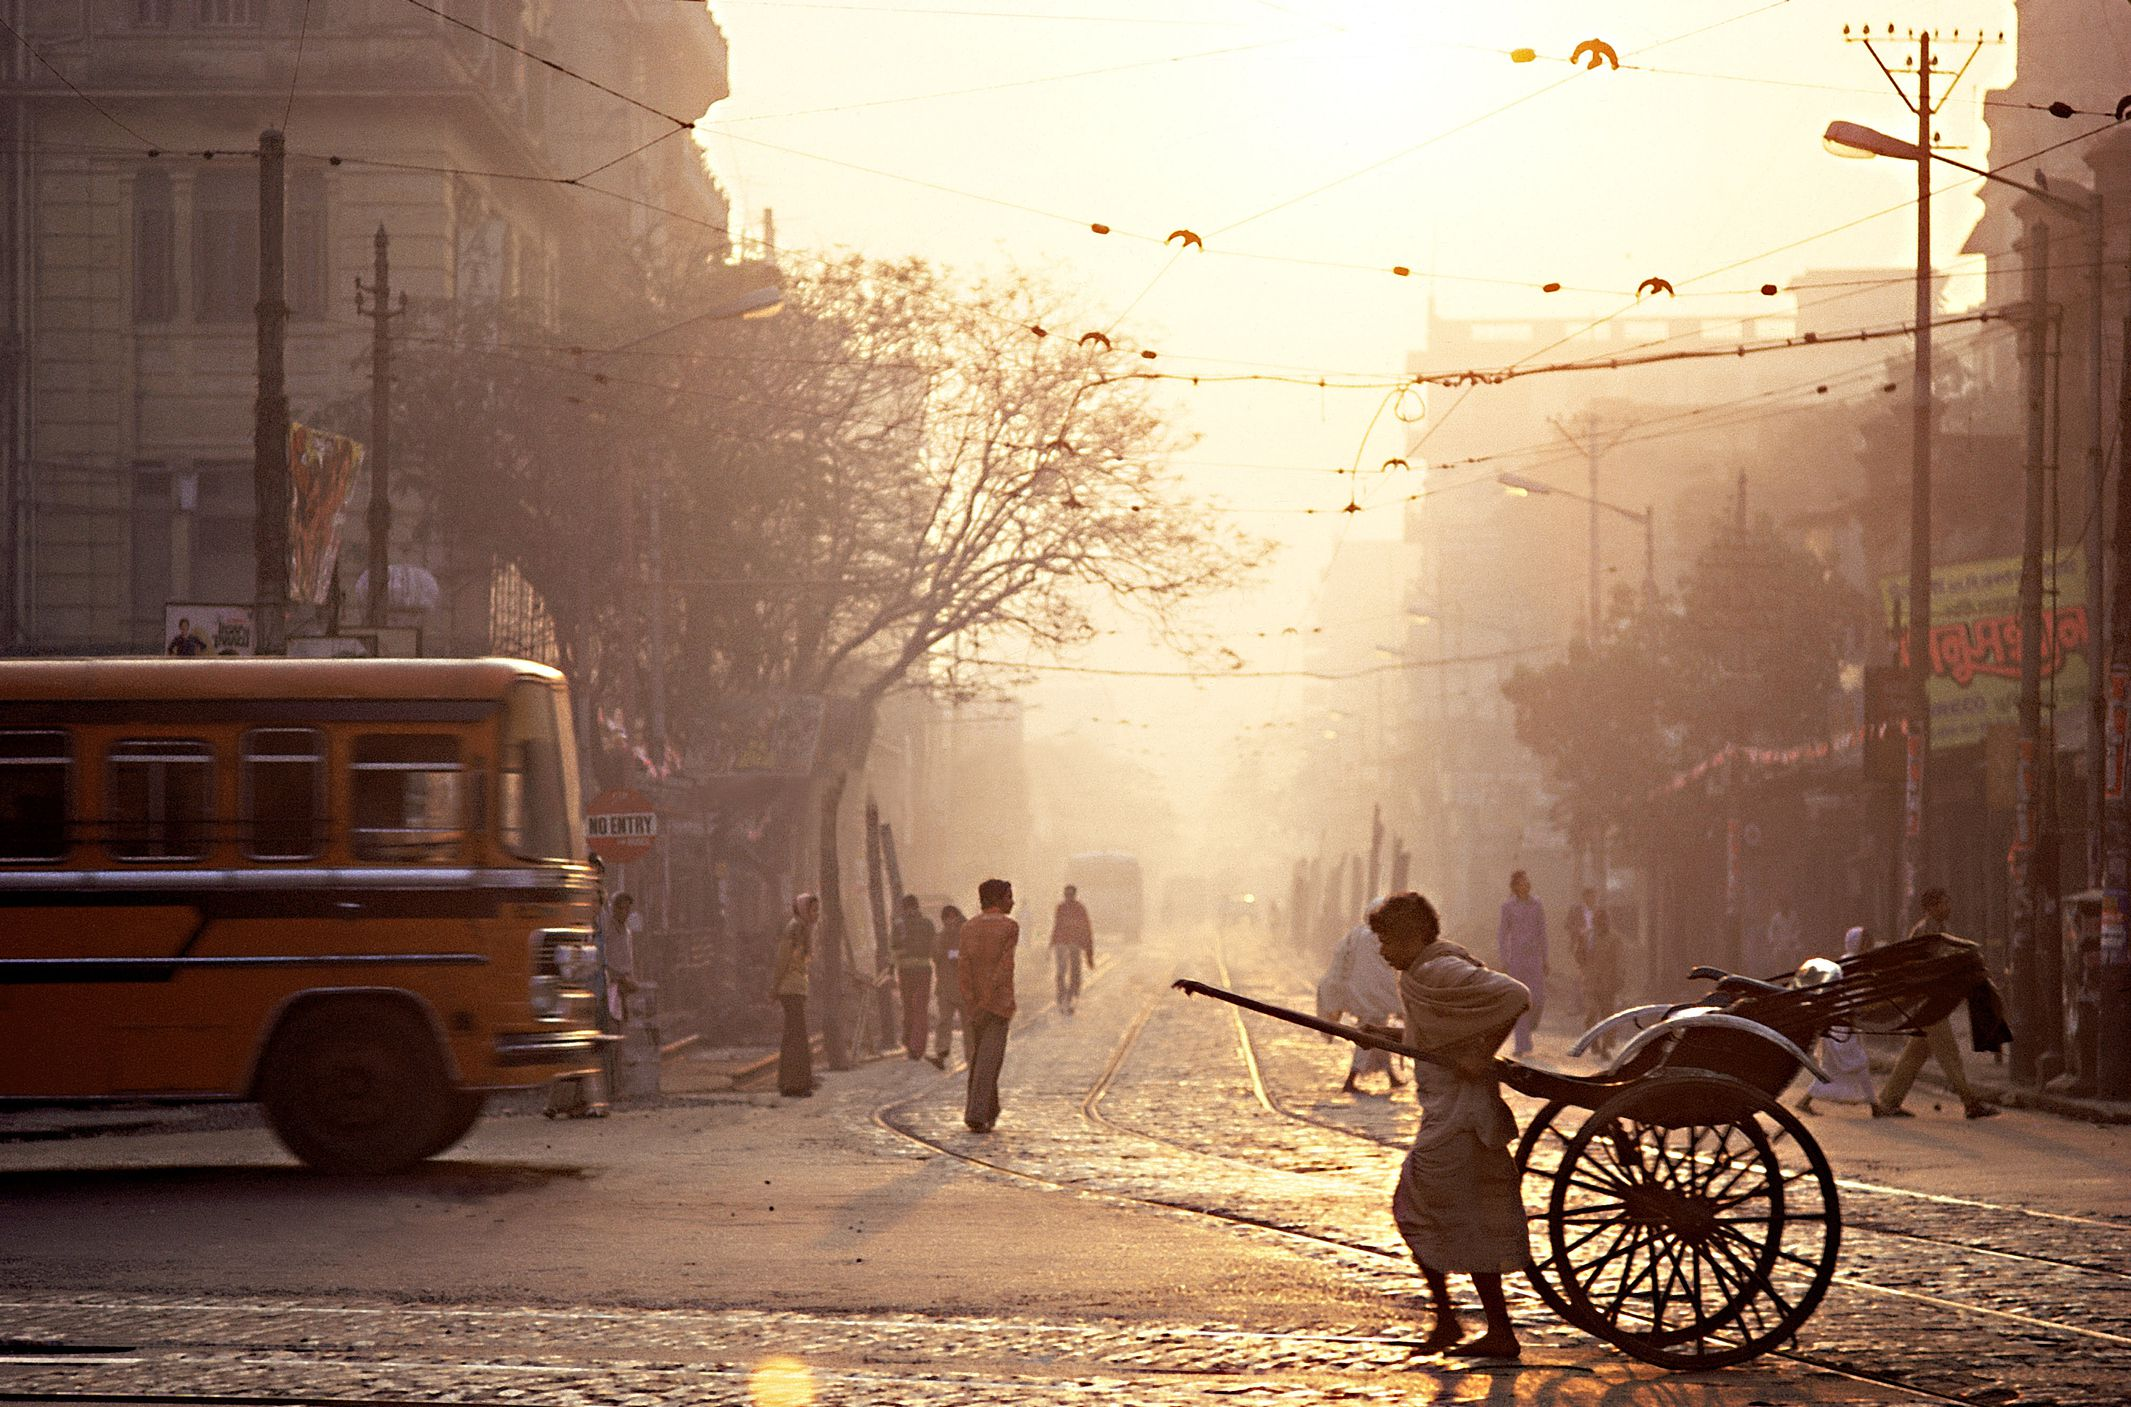 essay about my city kolkata College essay length mentor chris a book essay zero gravity flight about home essay society and family sentences in essay paragraph future robot essay tamil language supporting point in an essay prompts about my father essay new friend essays school friendship level essay on baseball era a.